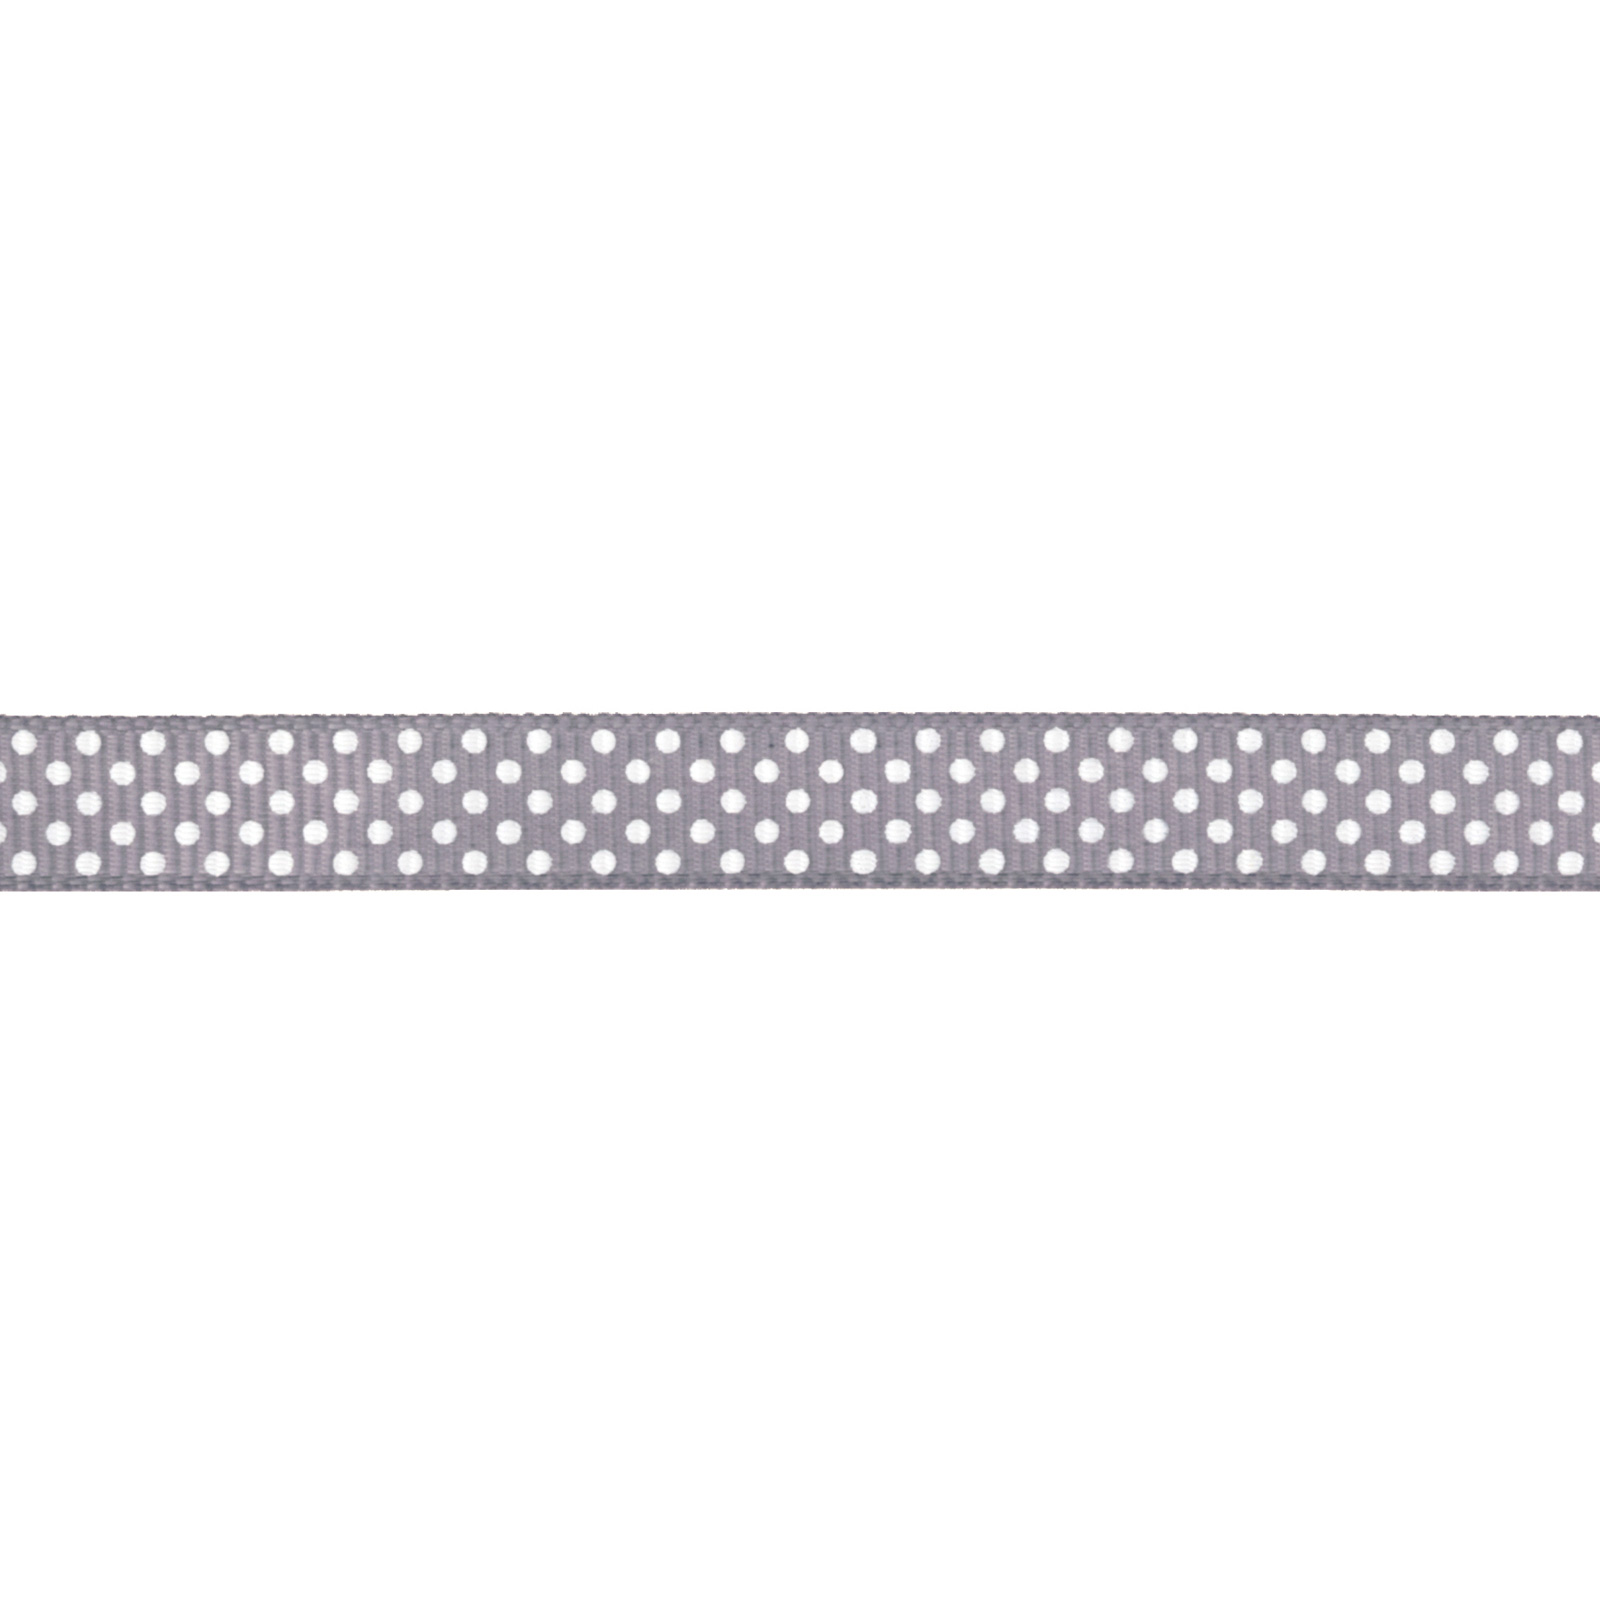 Riley Blake 3/8'' Grosgrain Ribbon White Dots Grey